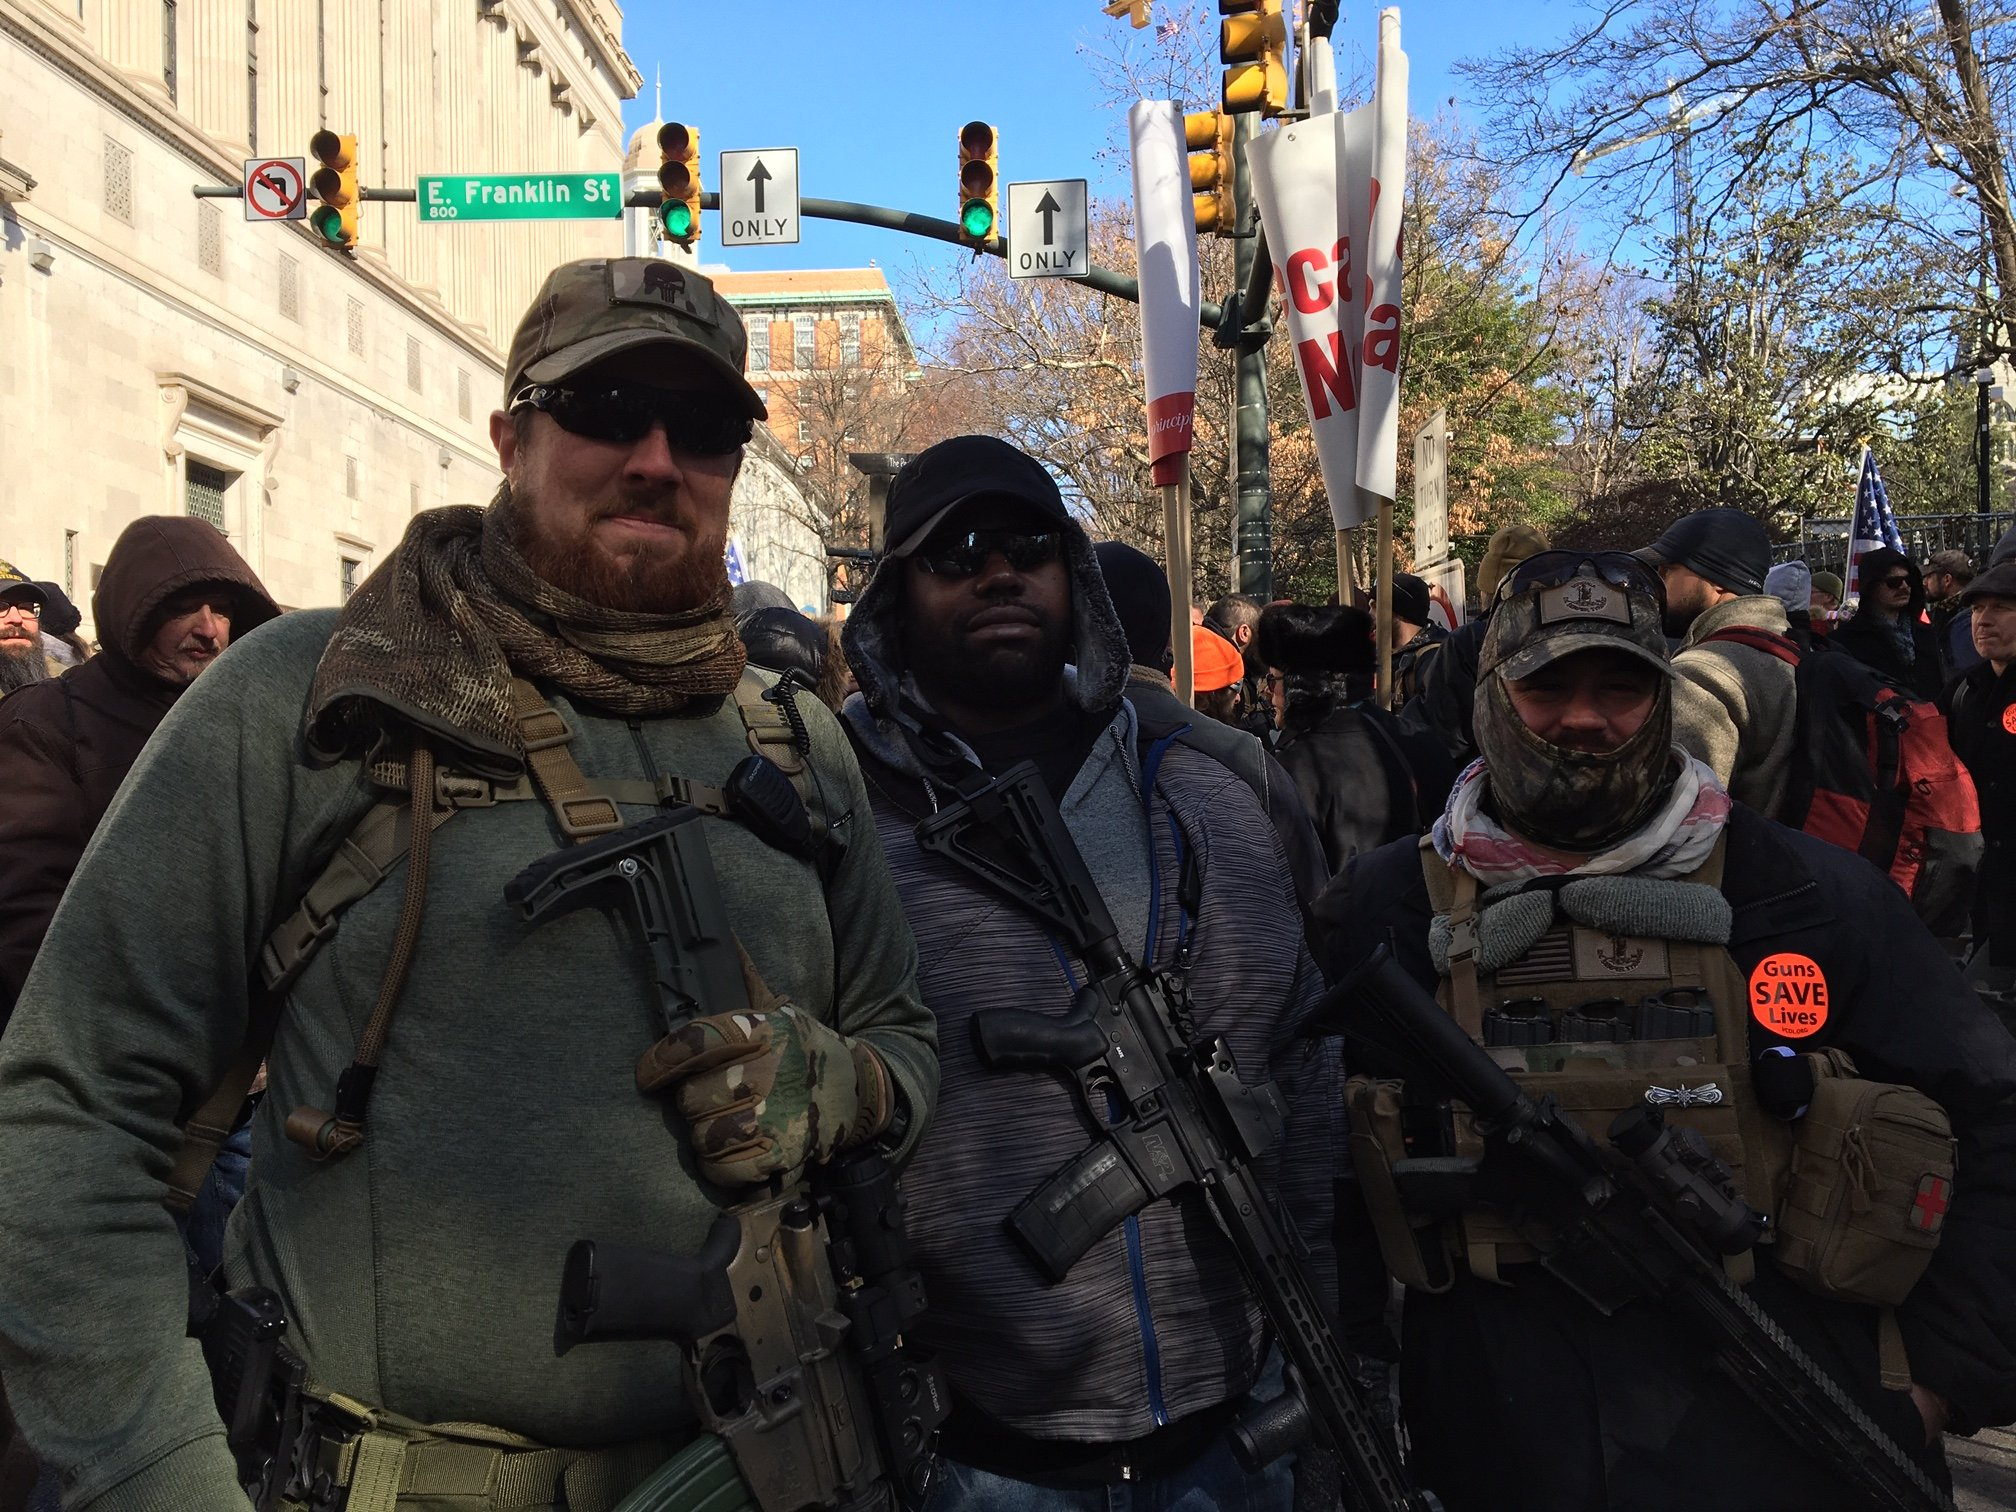 Virginia native Chad Barrett with other protesters in his group during Richmond's pro-gun rally (MEE/Sheren Khalel)